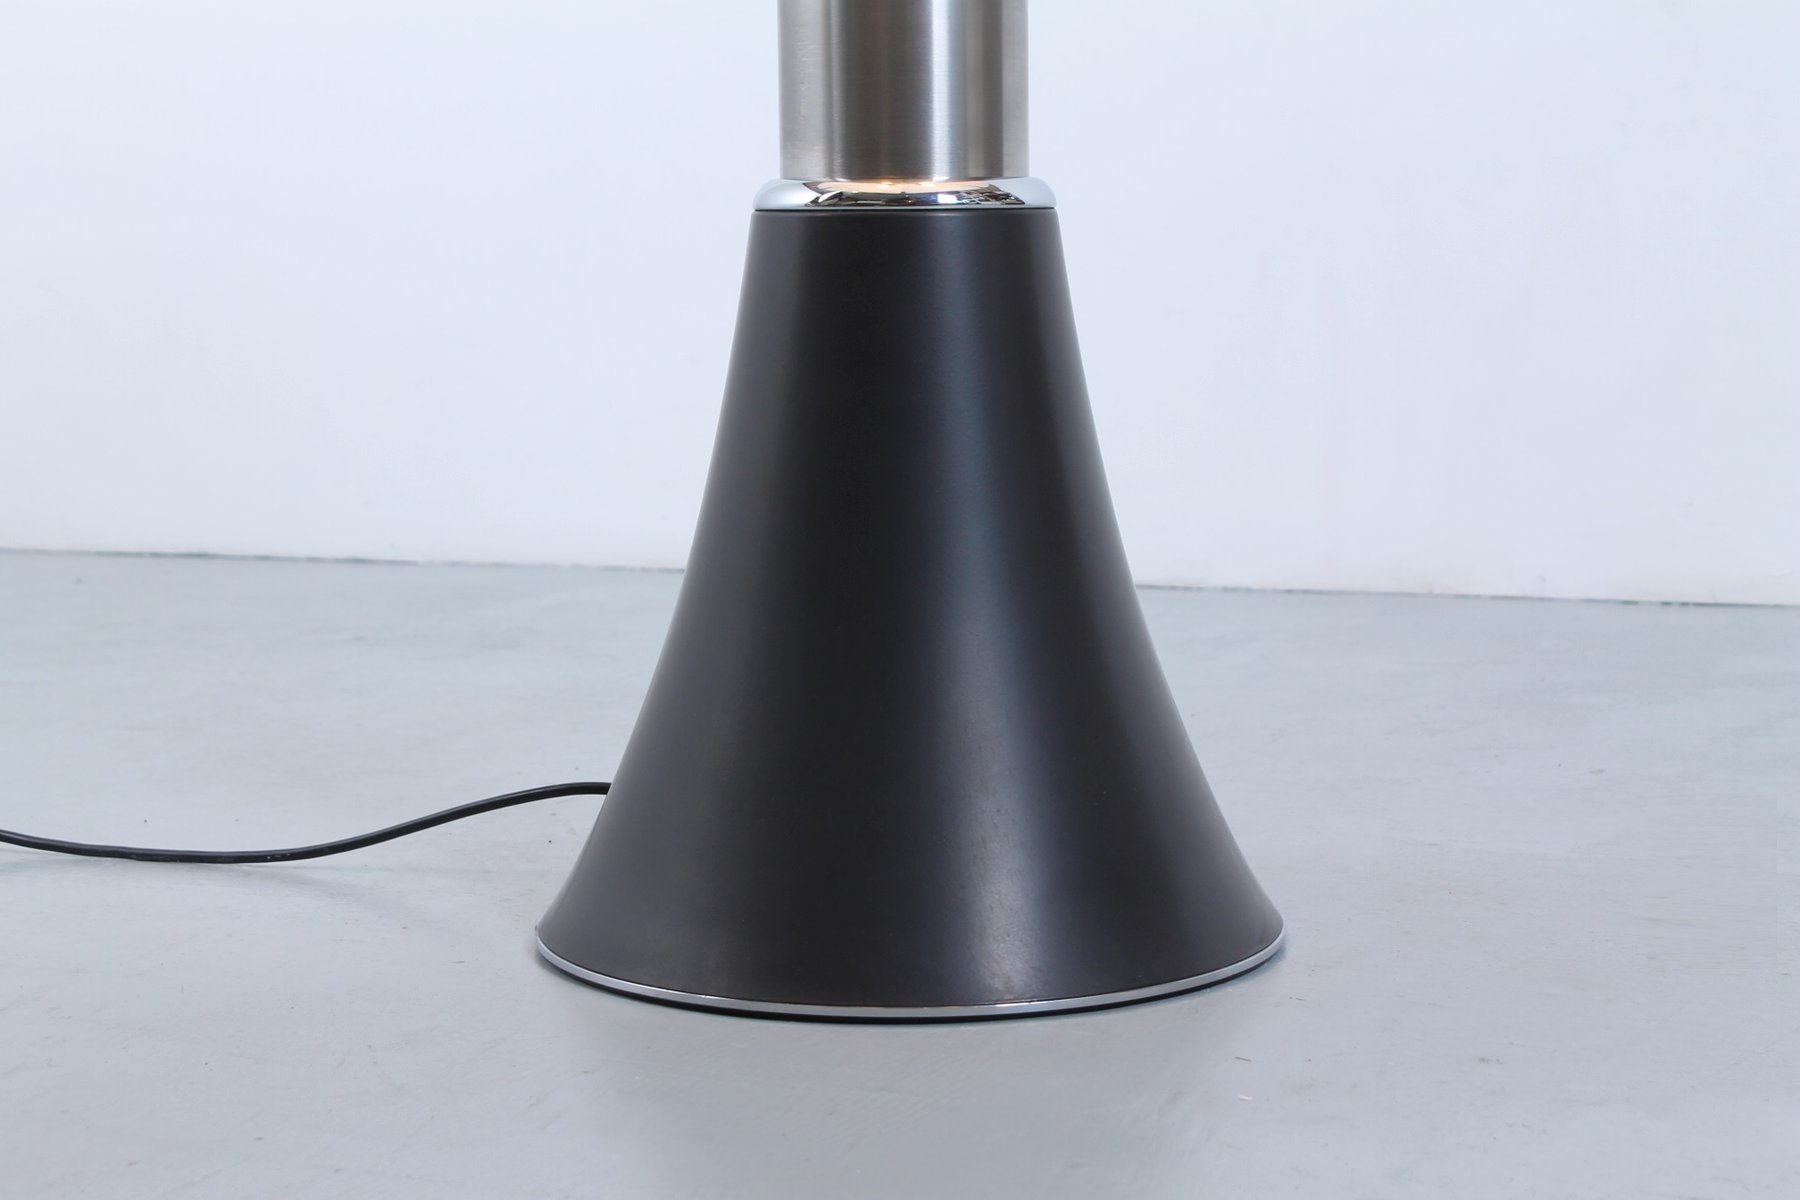 pipistrello large black table lamp by gae aulenti for martinelli luce 1960s for sale at pamono. Black Bedroom Furniture Sets. Home Design Ideas